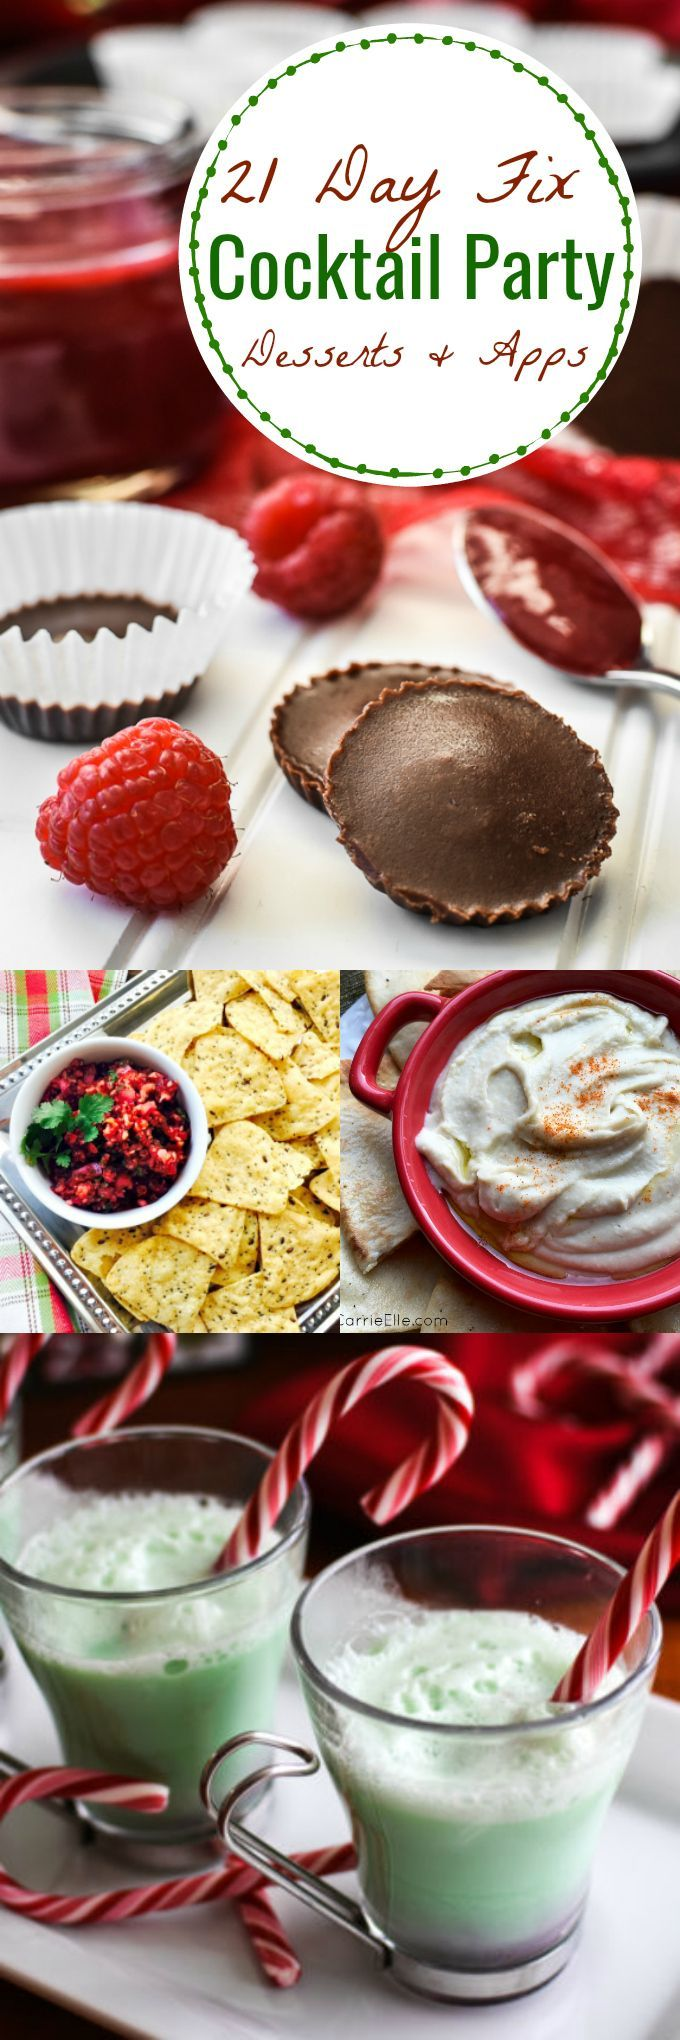 21 Day Fix Cocktail Party Apps and Desserts (with container counts!)